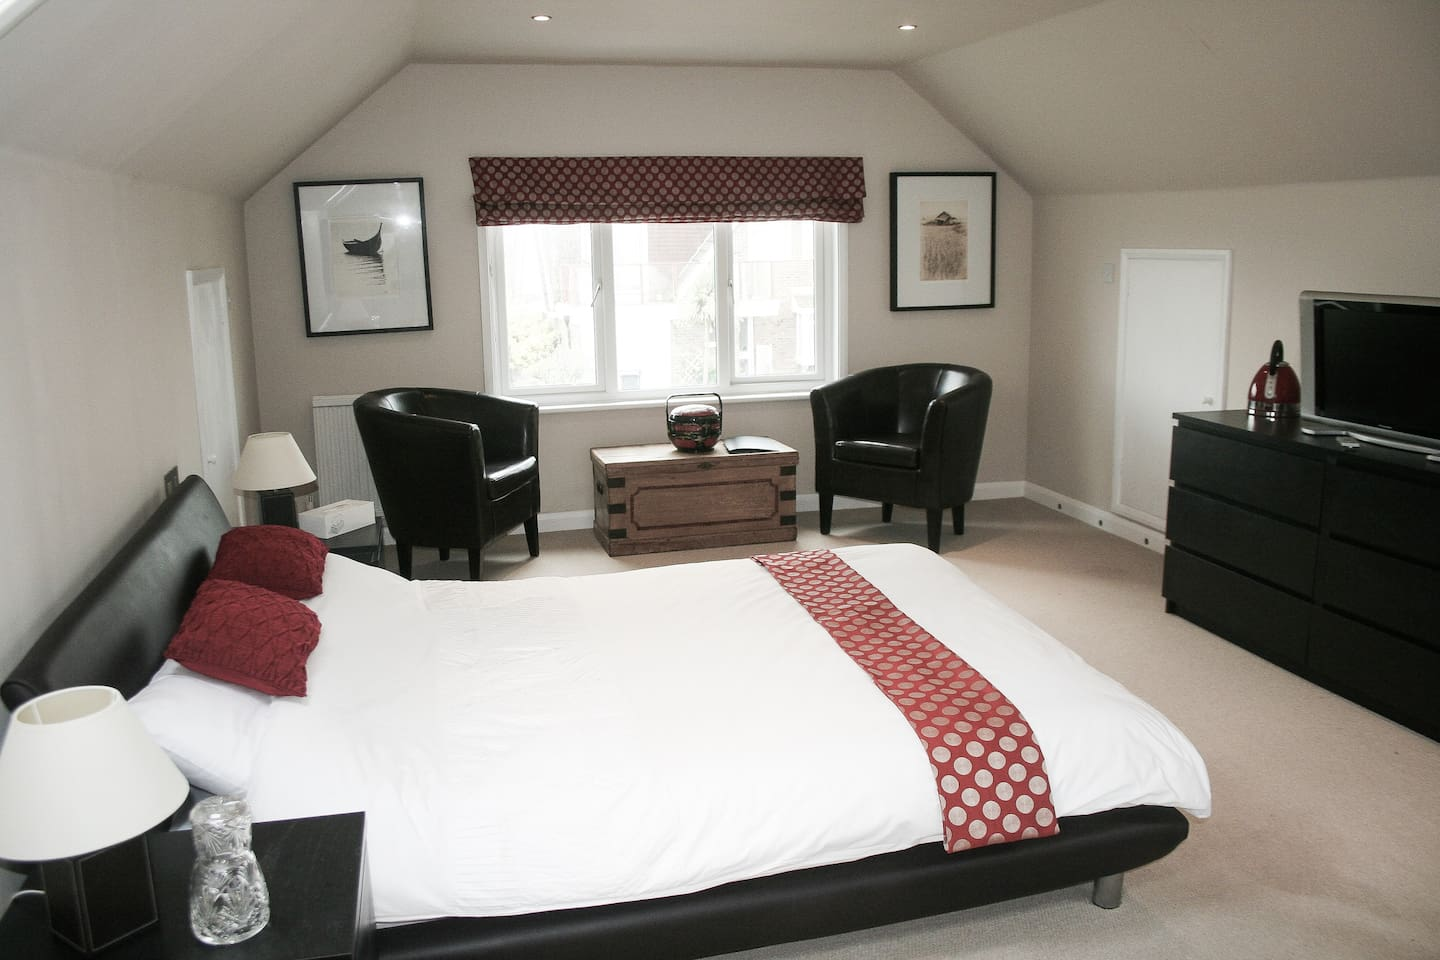 Spacious double room occupying entire loft space